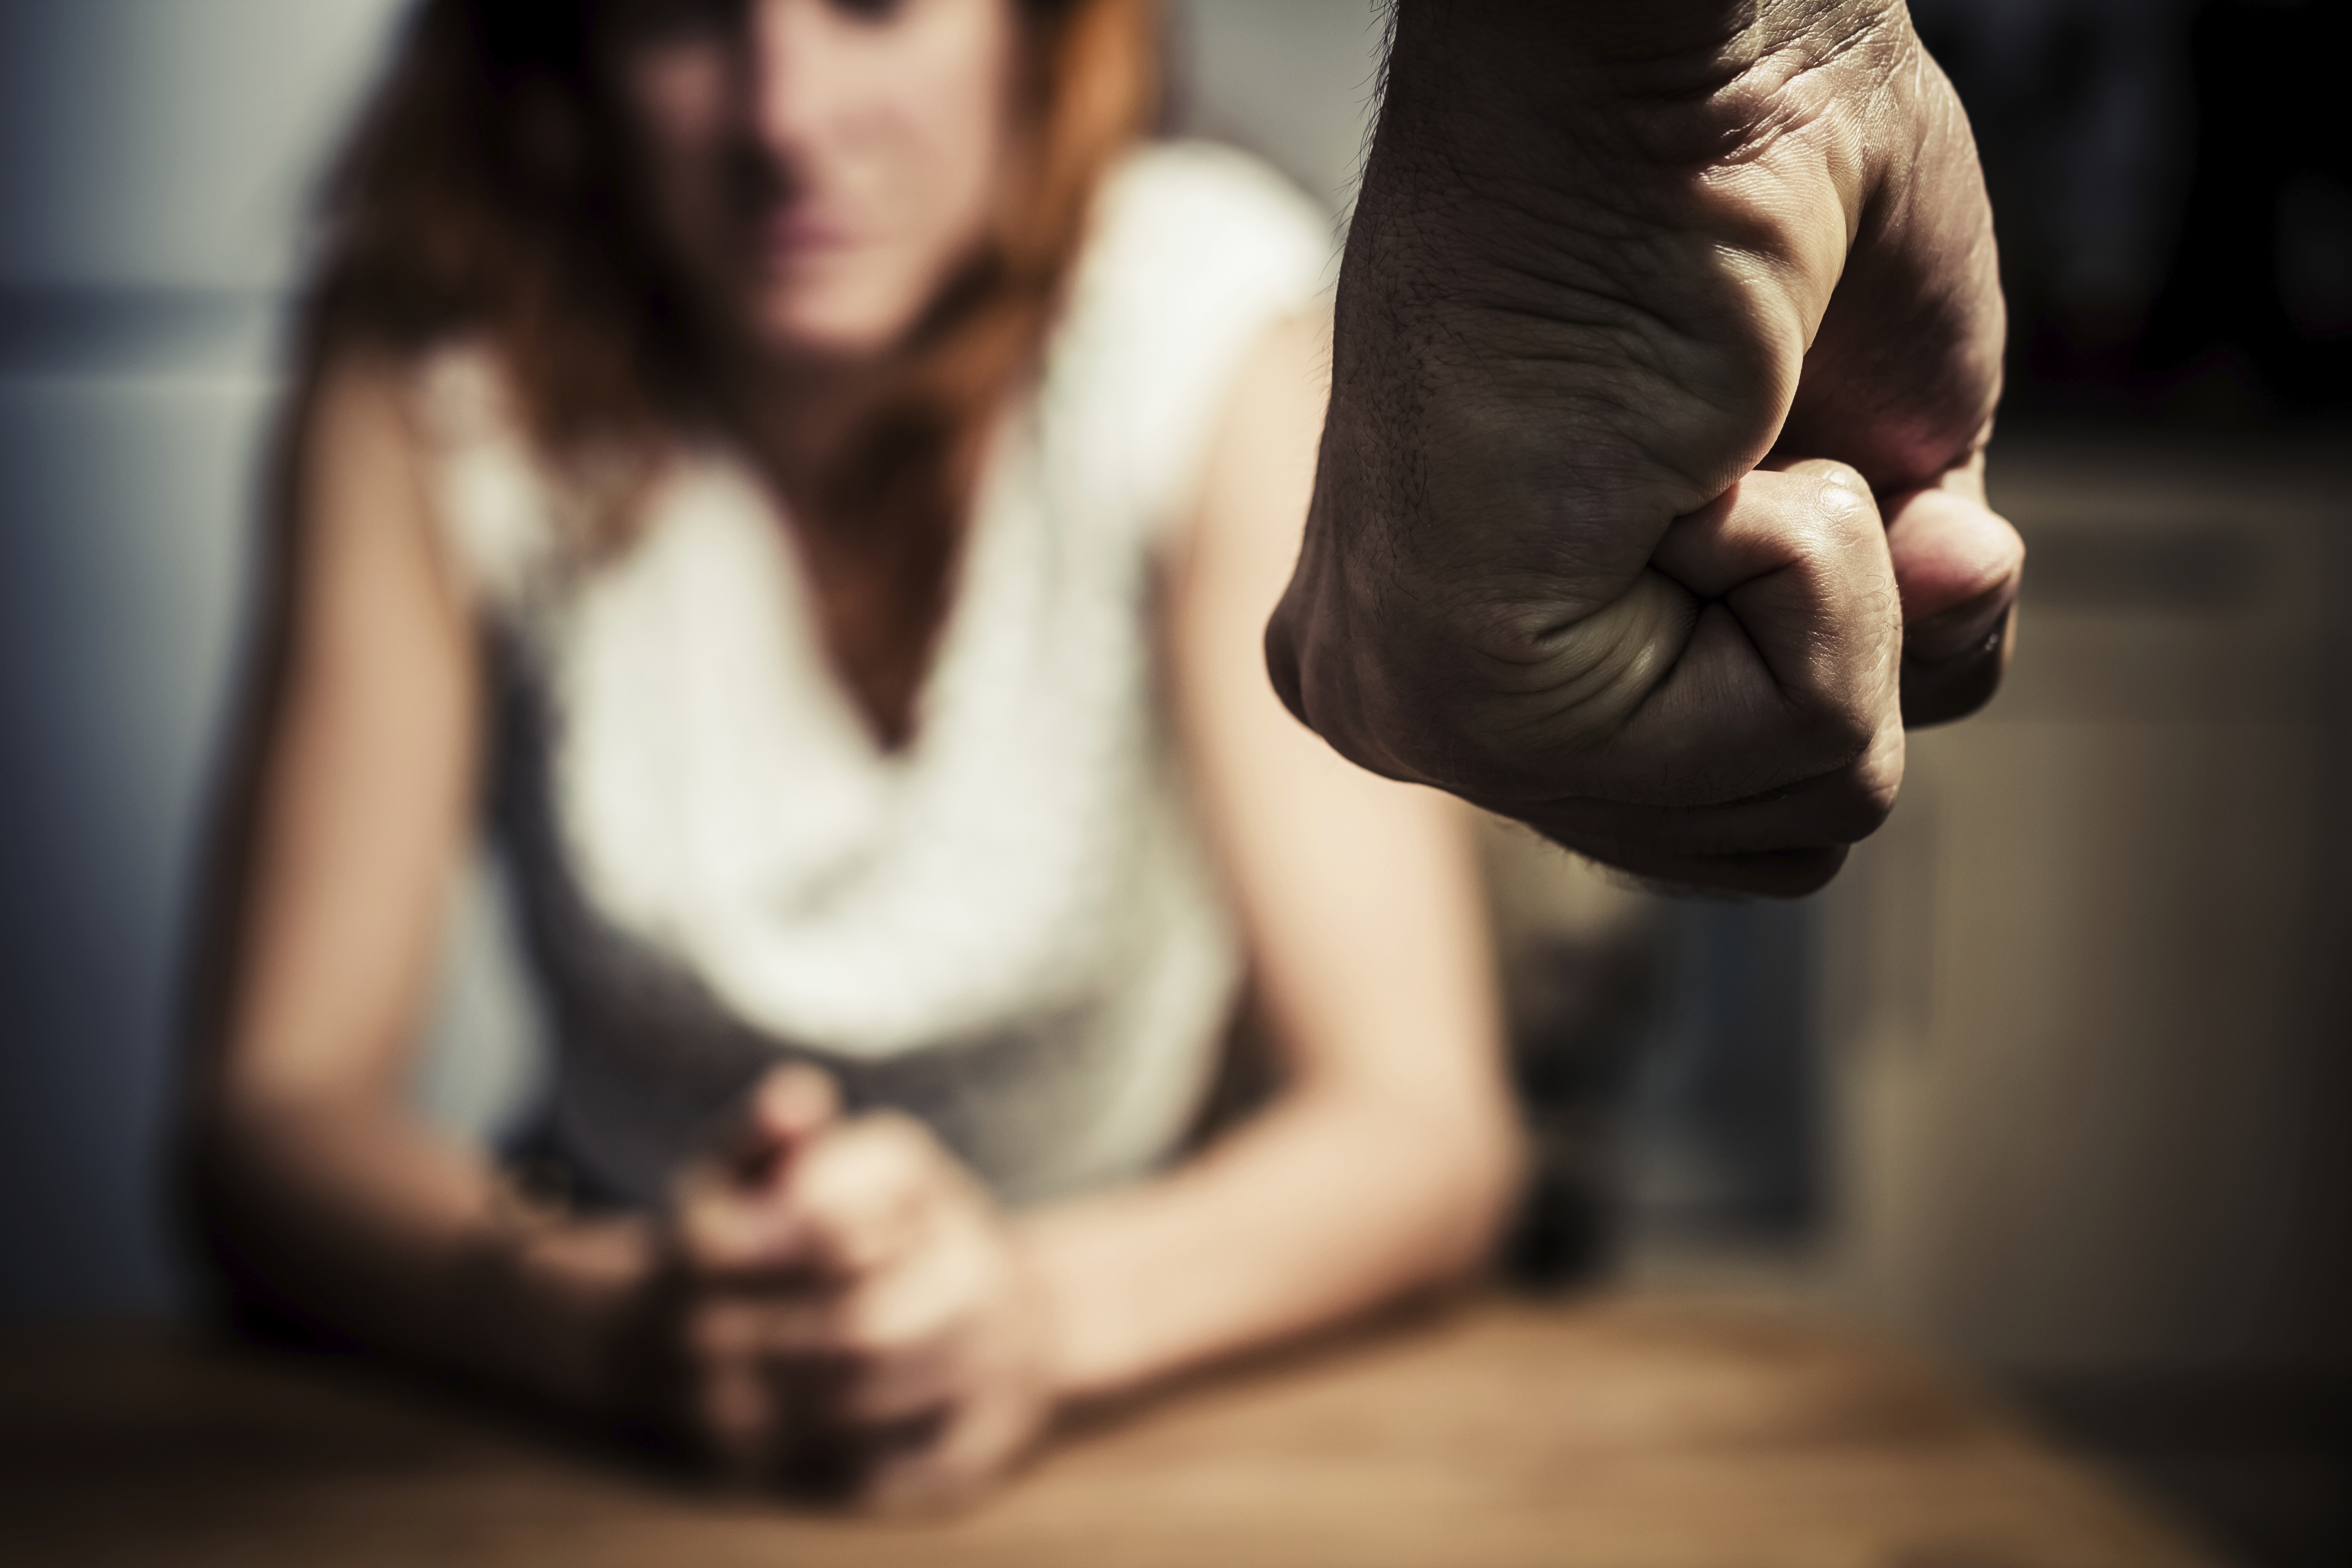 Does Social Work Training Include Domestic Abuse Awareness?